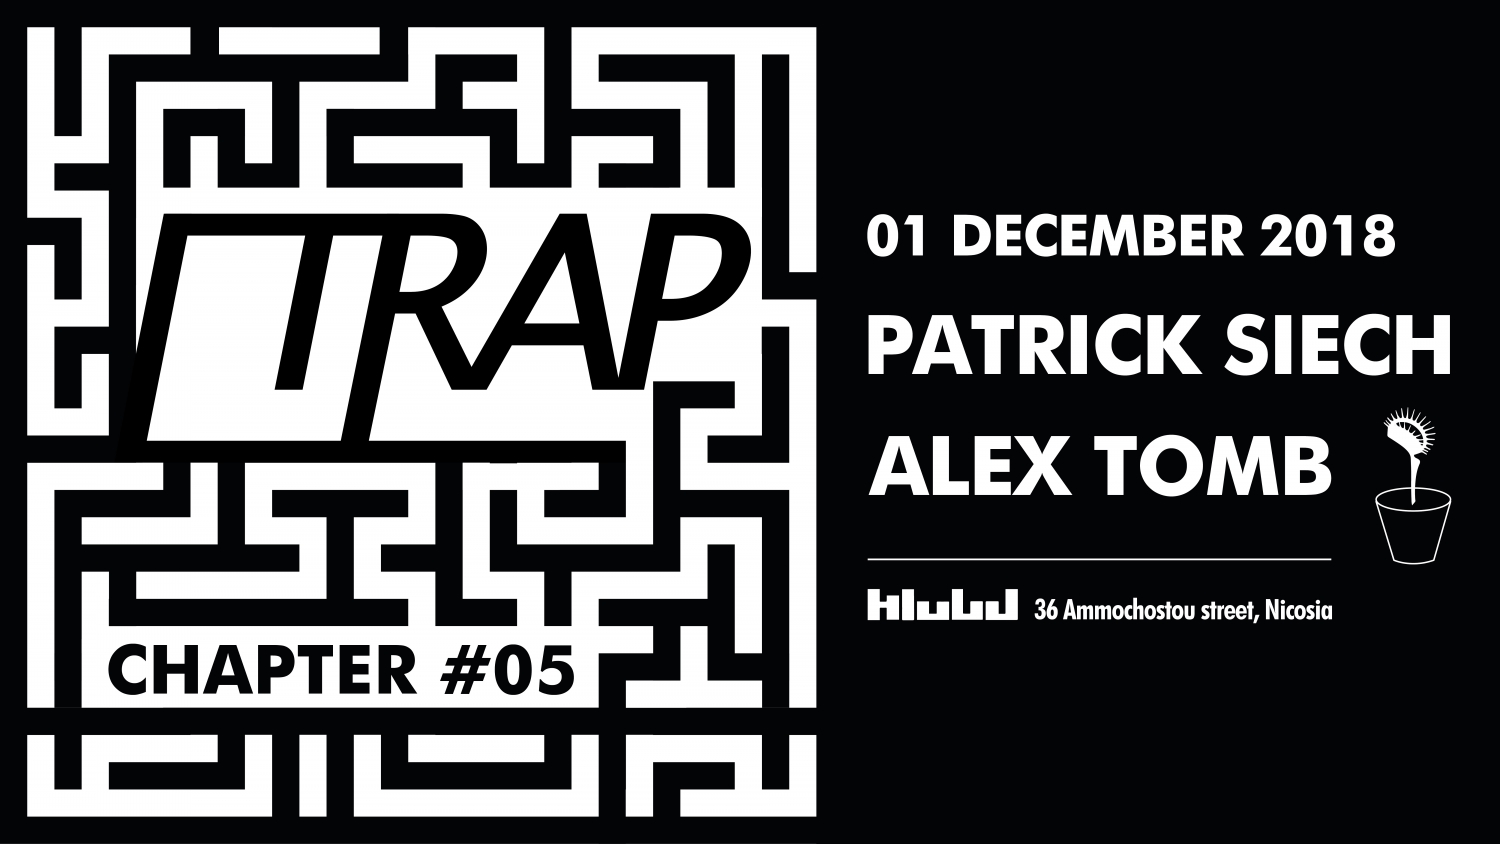 TRAP: Chapter #05 with Patrick Siech & Alex Tomb